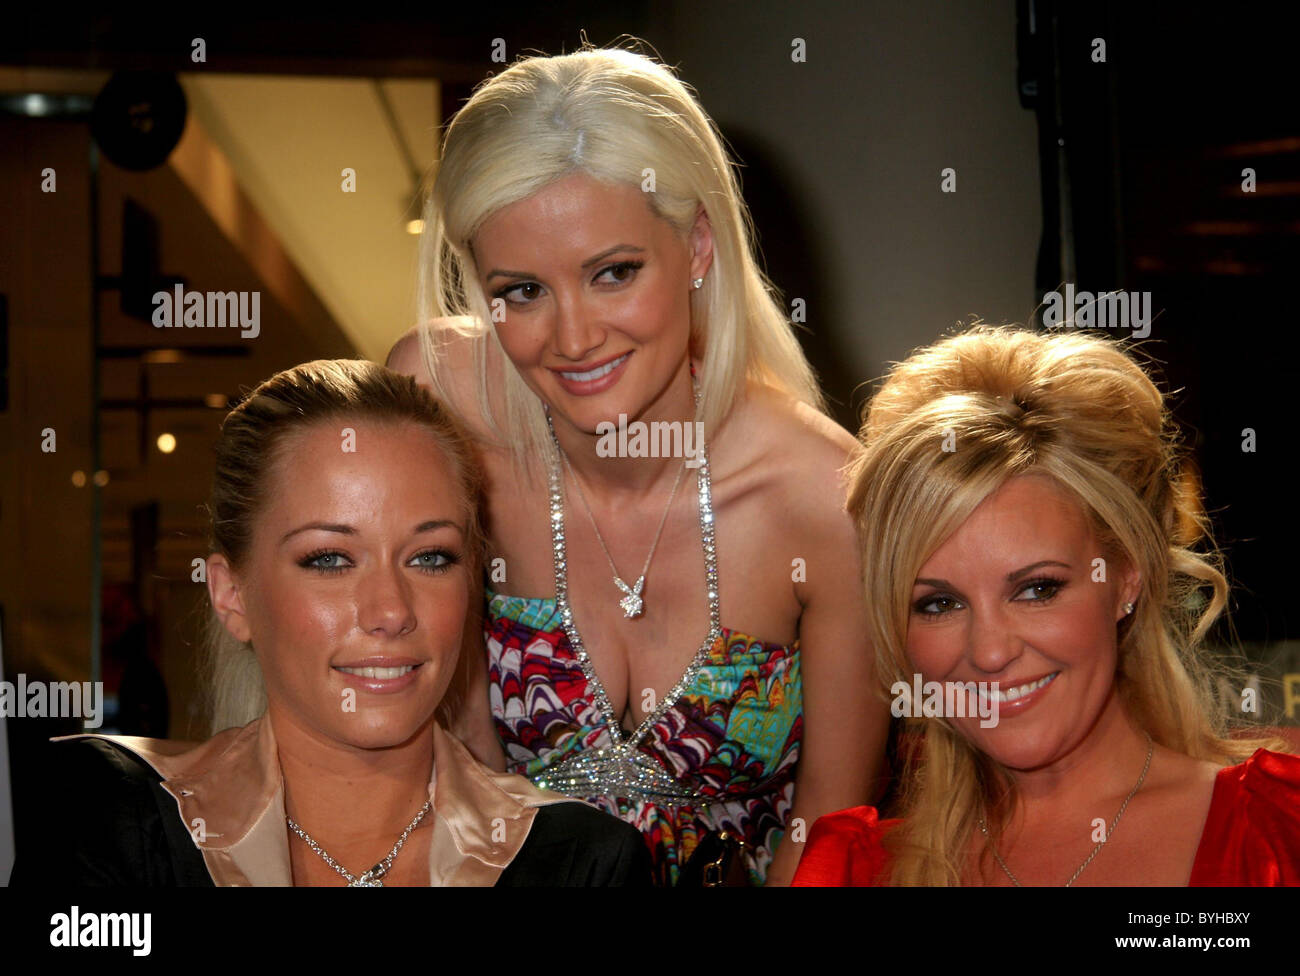 Holly madison kendra wilkinson girl next door with you